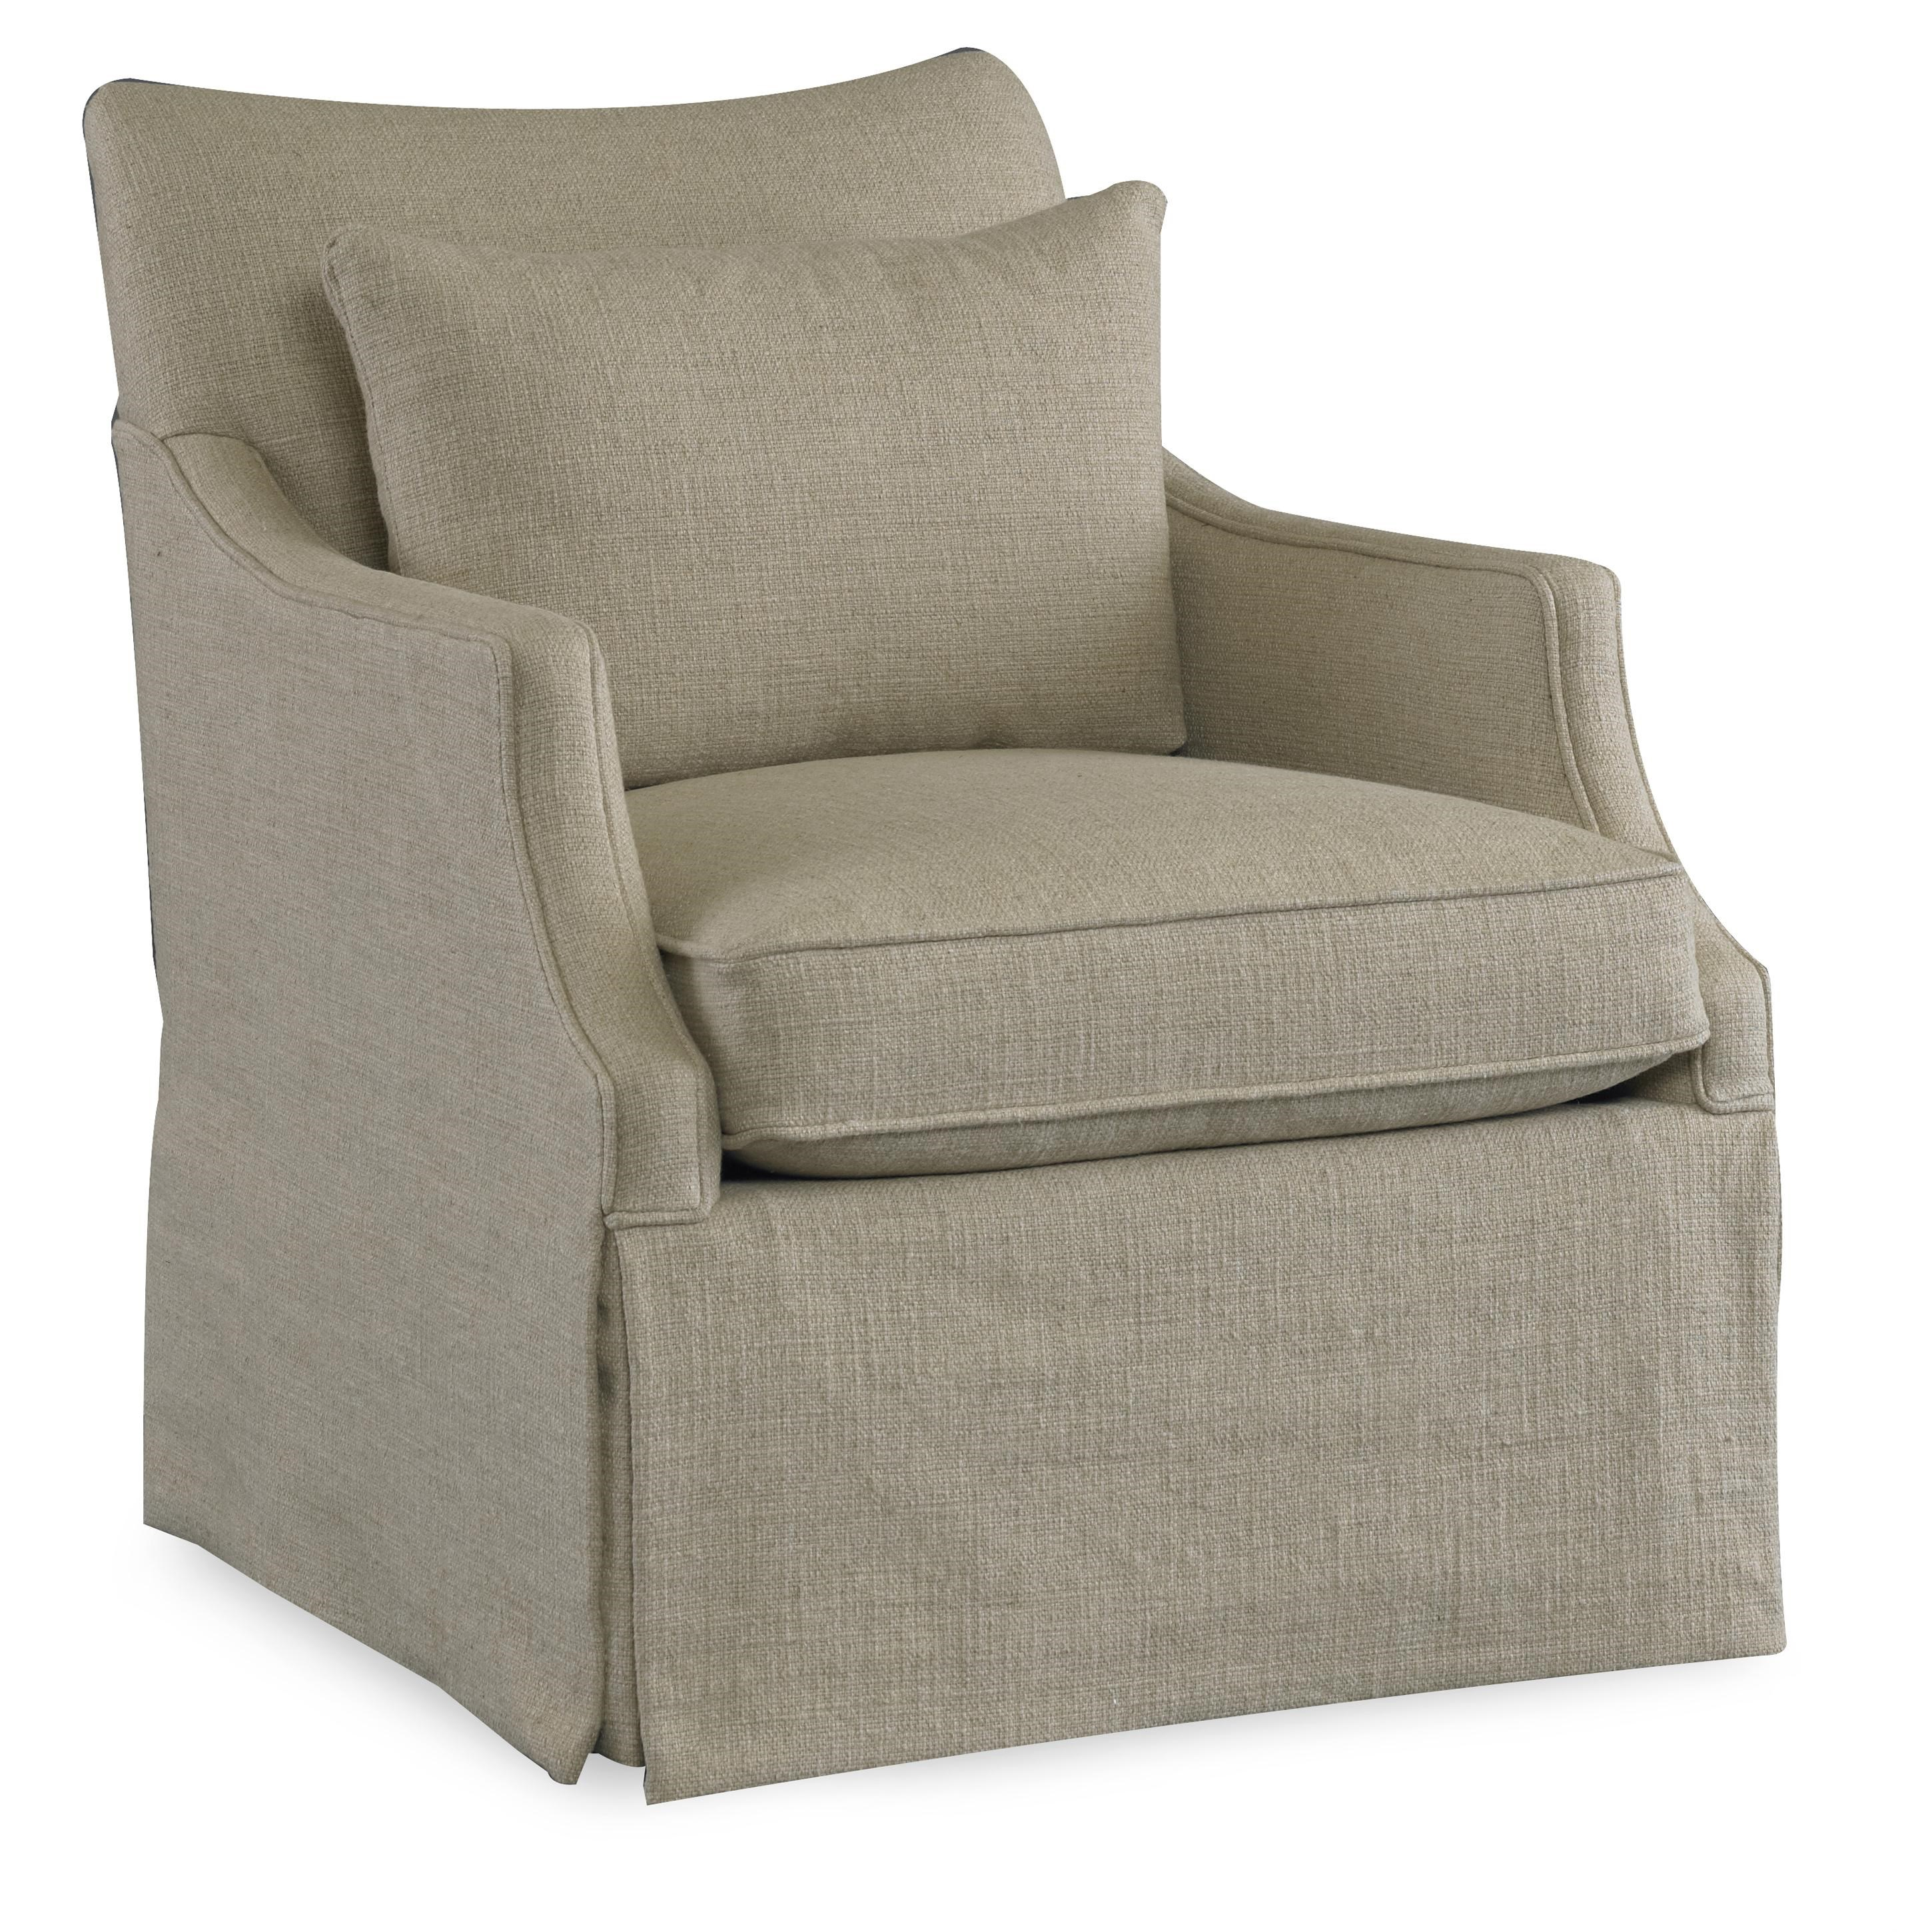 Sam Moore AzrielSkirted Swivel Glider Chair